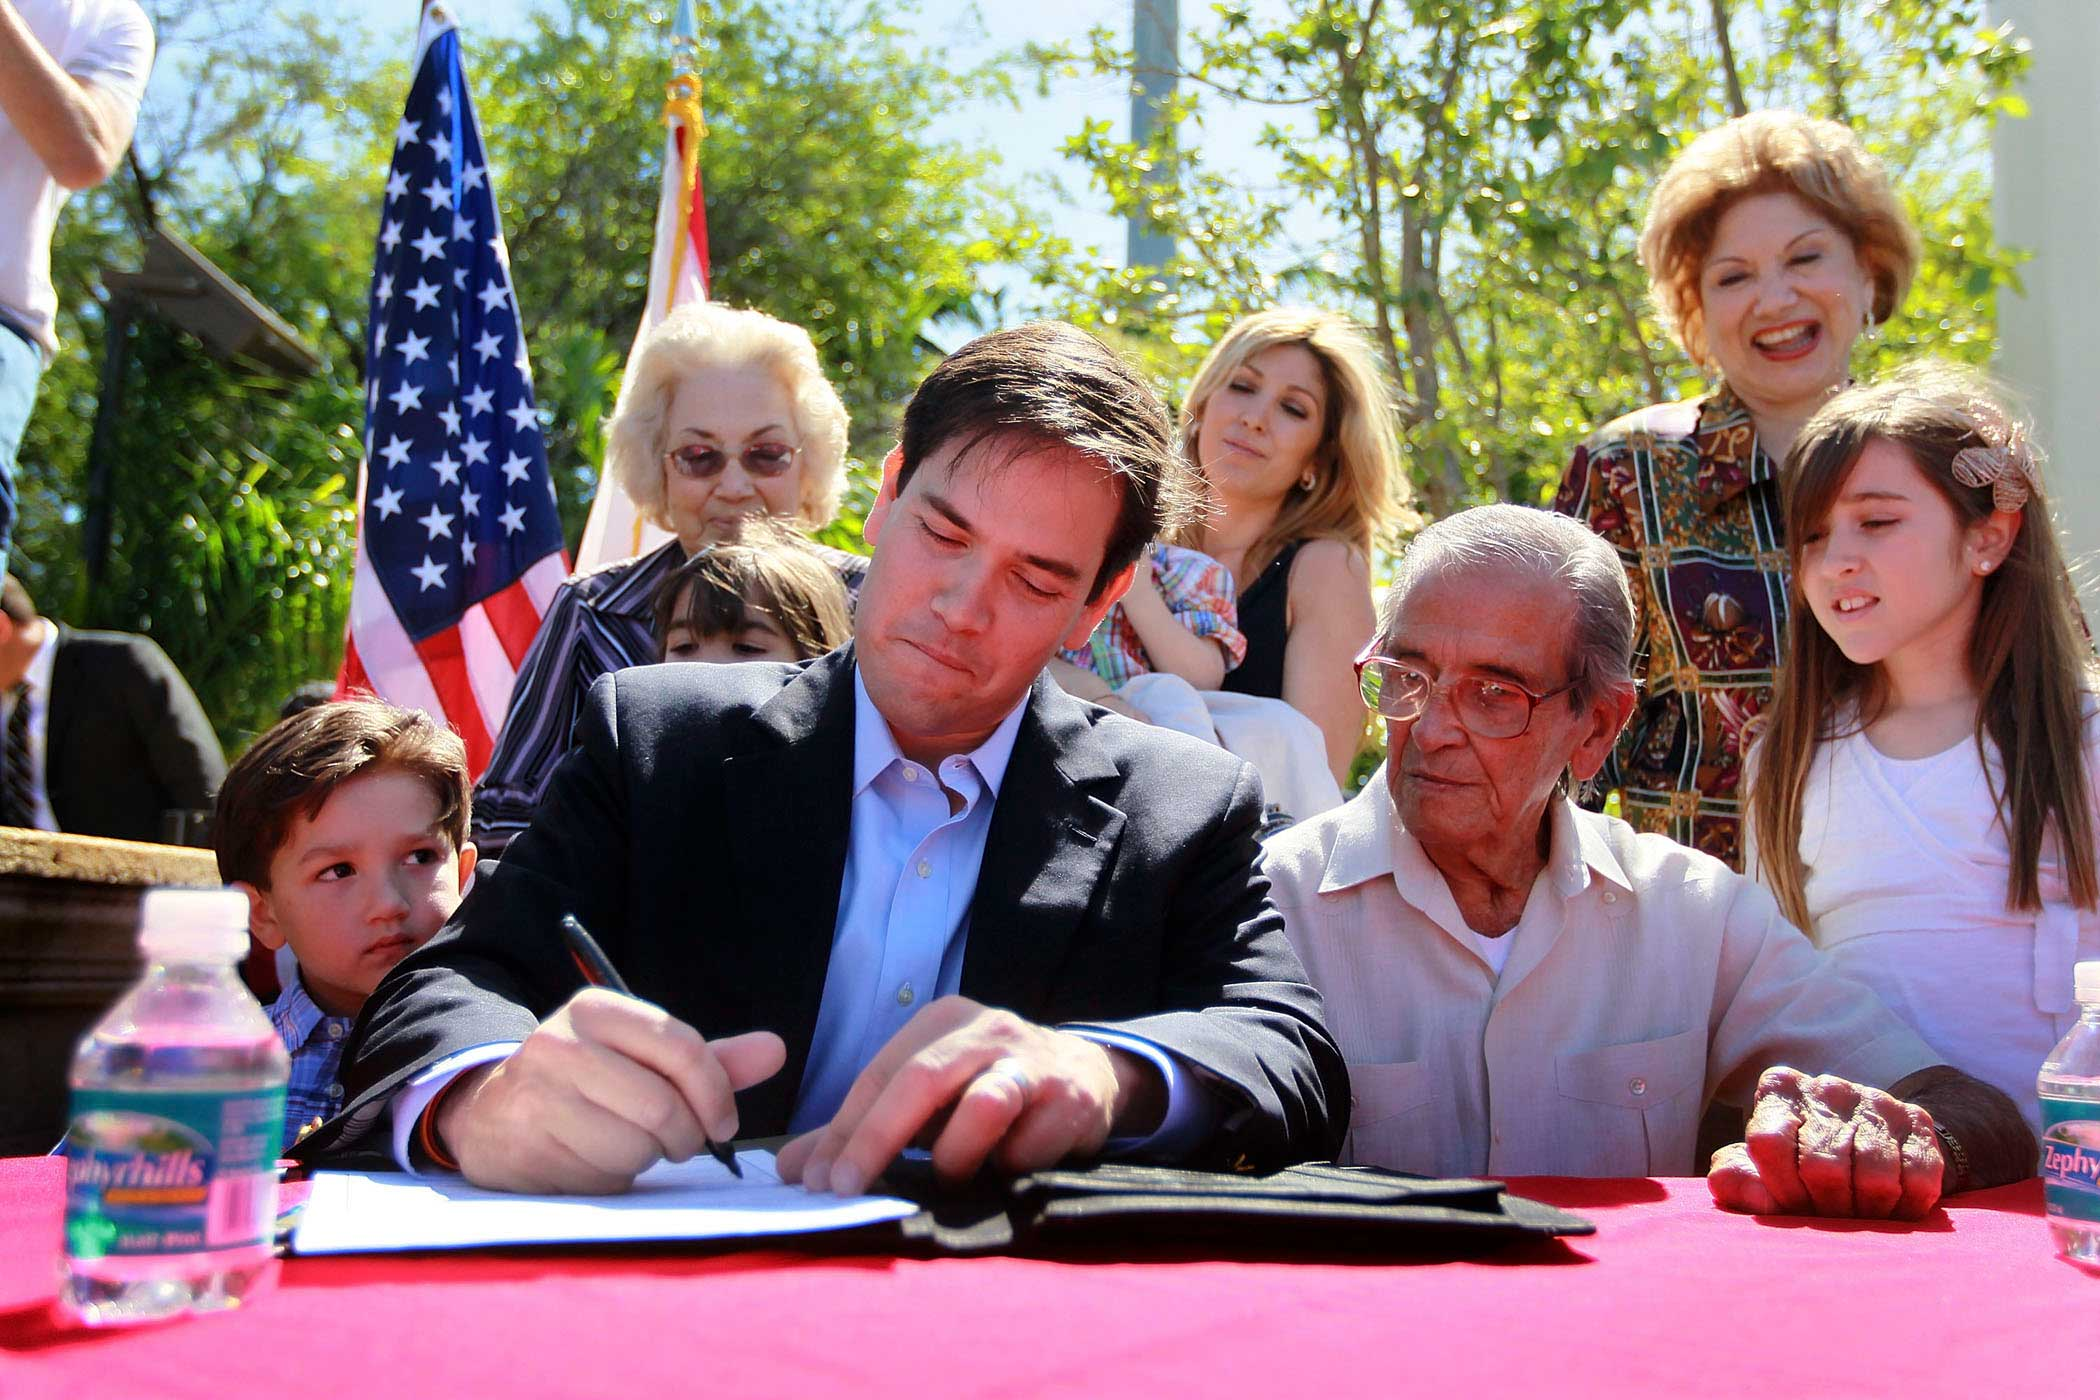 Marco Rubio with his son, Anthony Rubio, father, Mario Rubio and daughter Amanda Rubio as he signs election documents officially qualifying him as a Republican candidate for the U.S. Senate in Miami, Fla., on April 27, 2010.